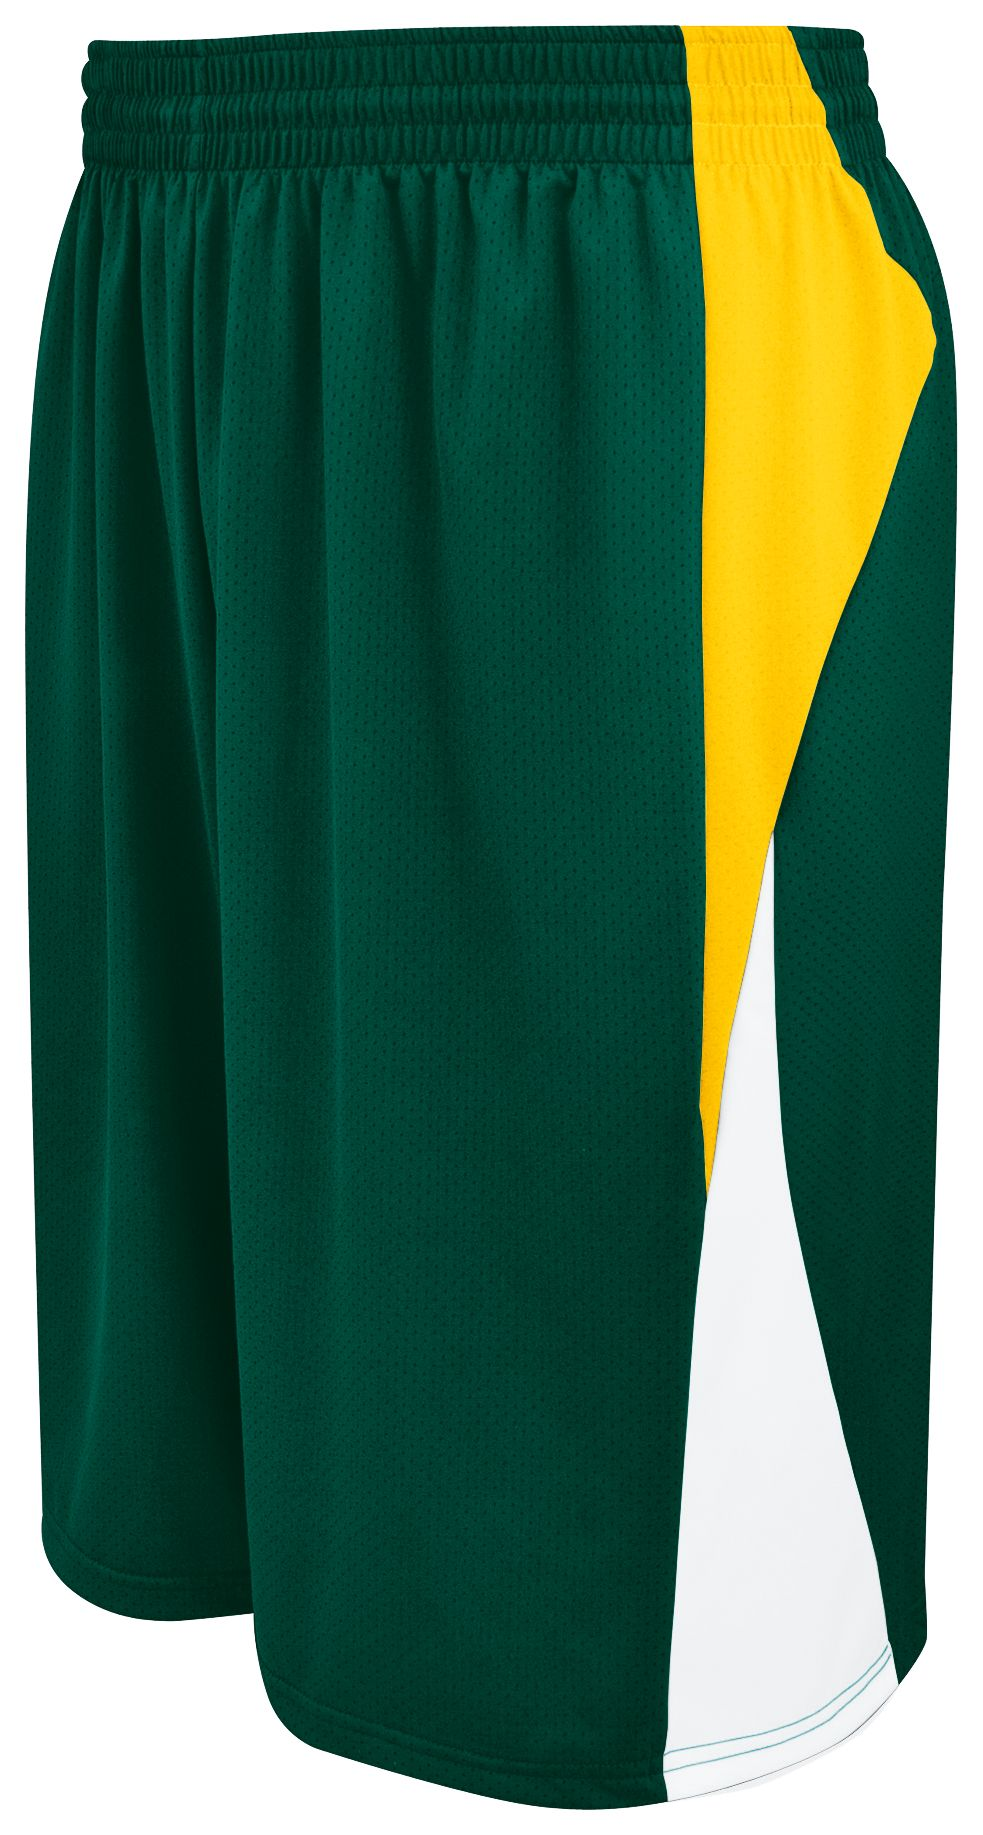 Campus Reversible Shorts - FOREST/ATHLETIC GOLD/WHITE